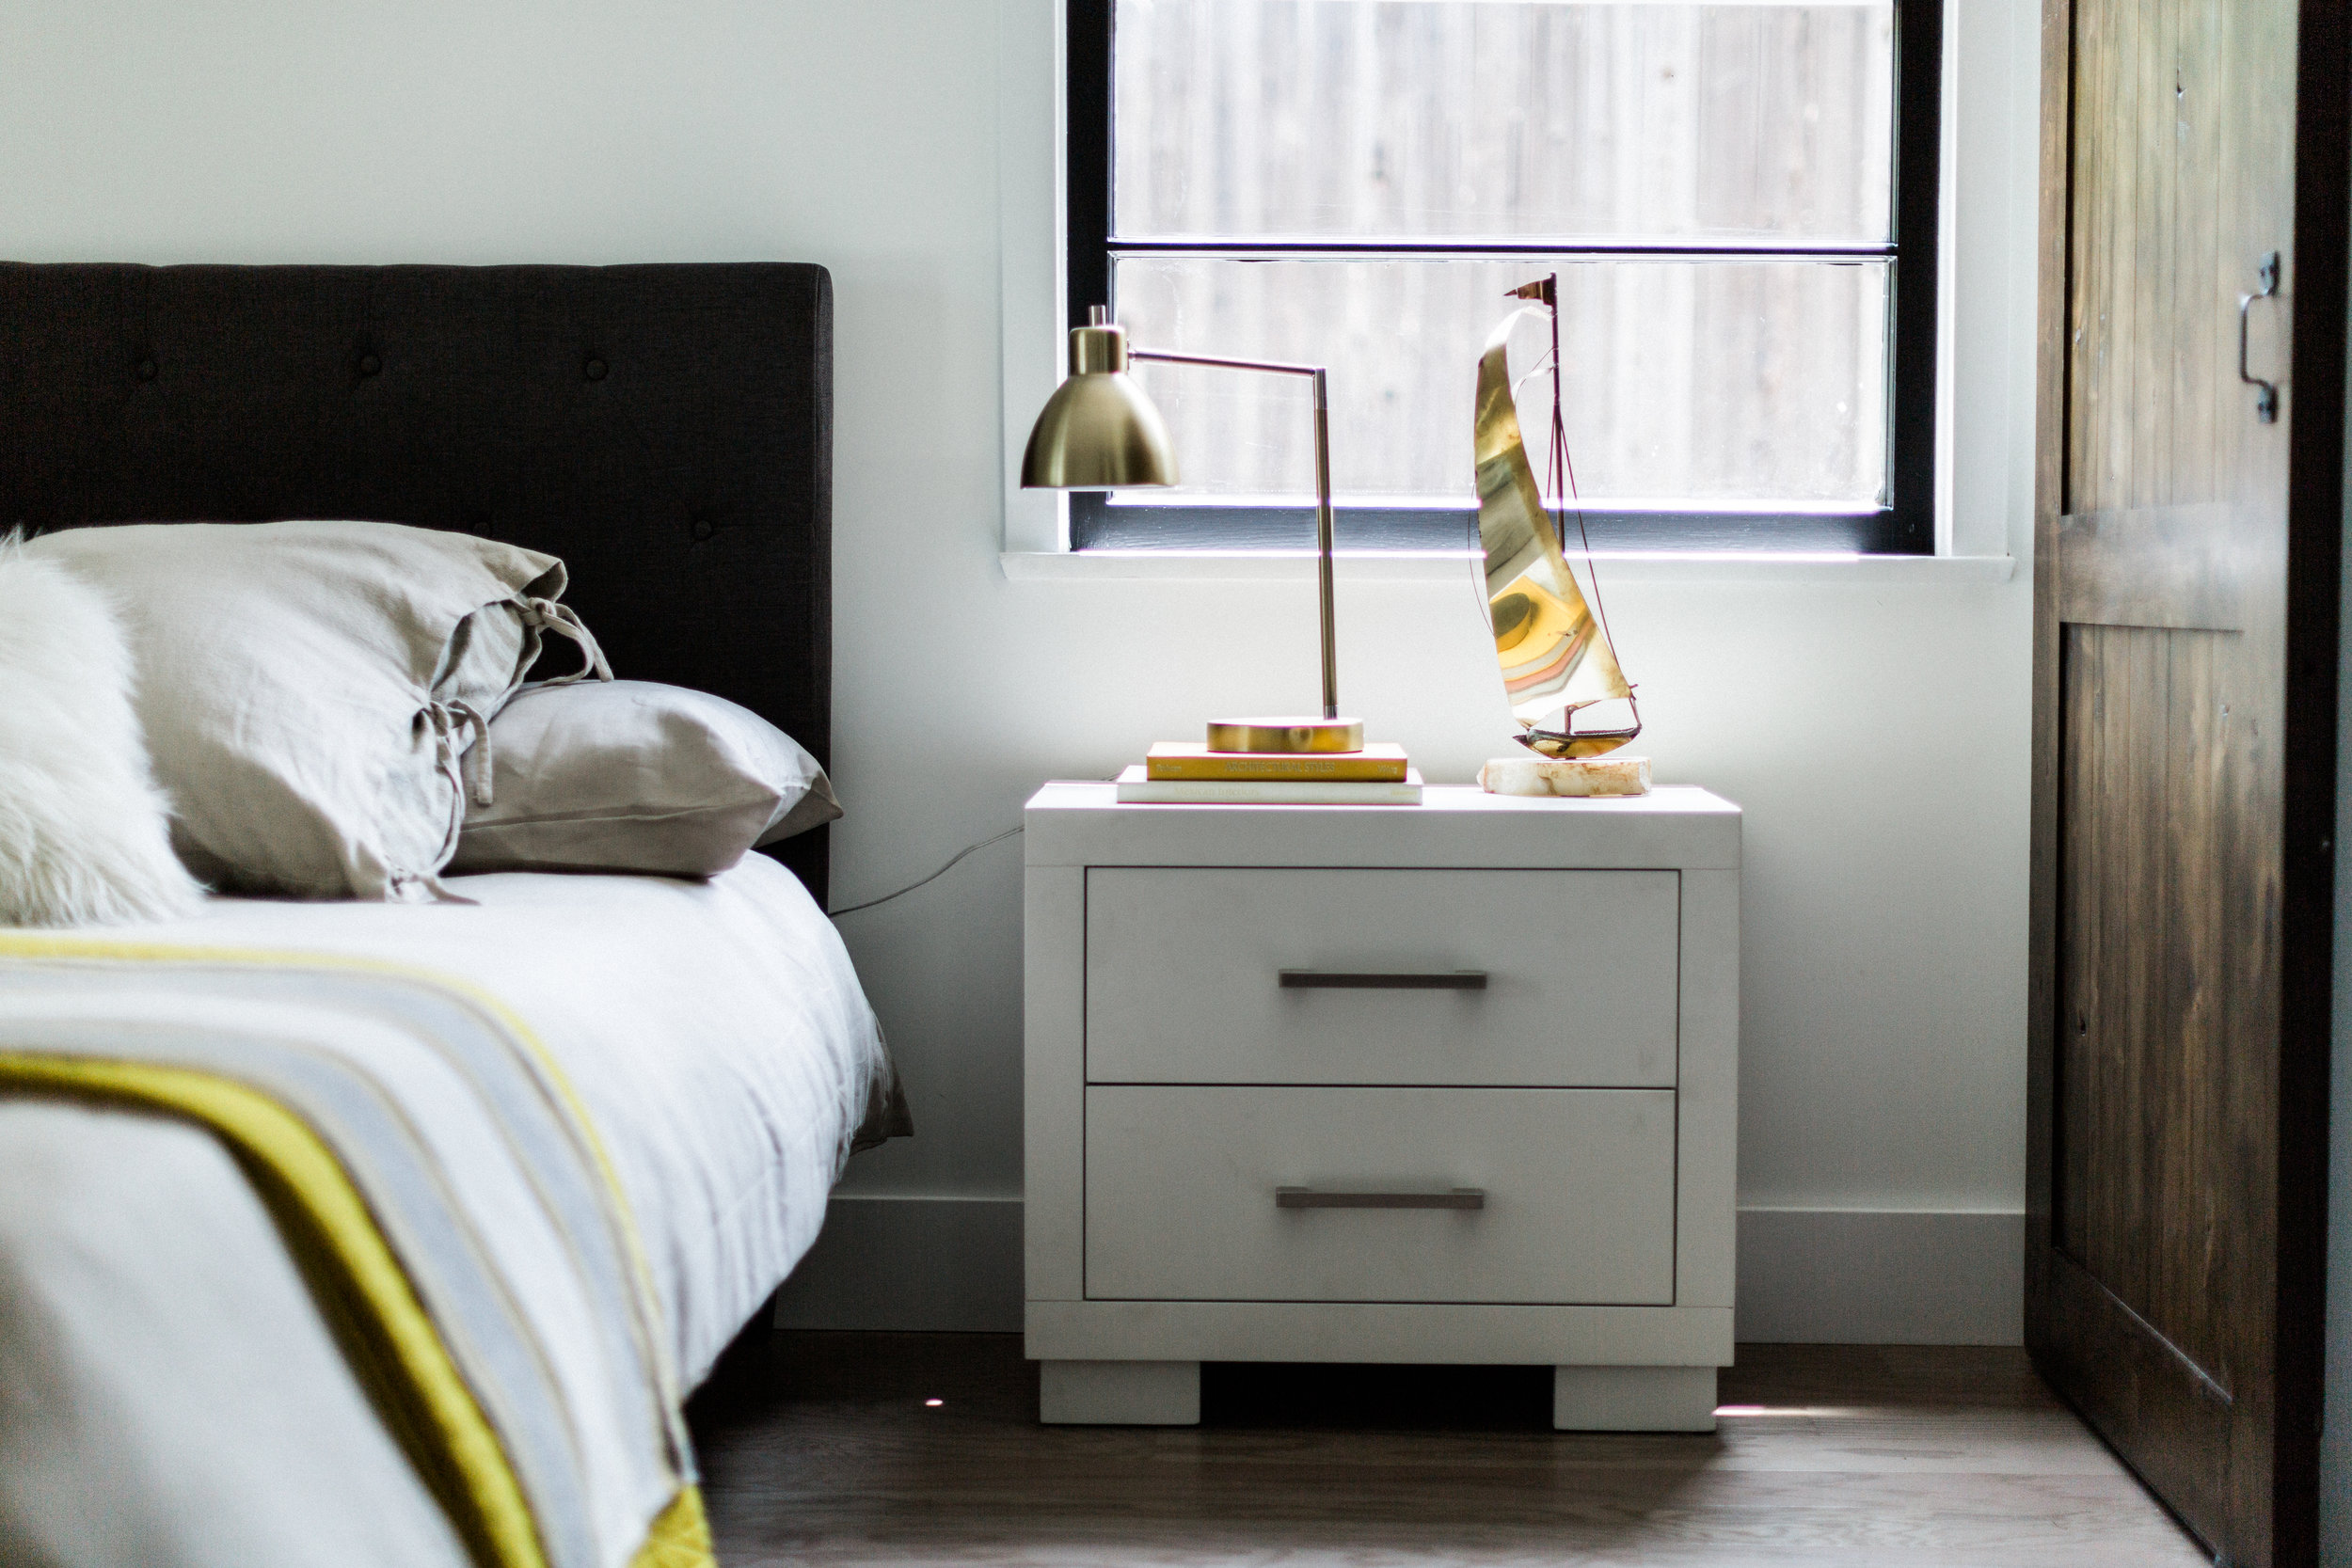 Ochre, gray and brass. Brass is back. in a big way. We don't see it going away anytime soon. And that's fine with us.